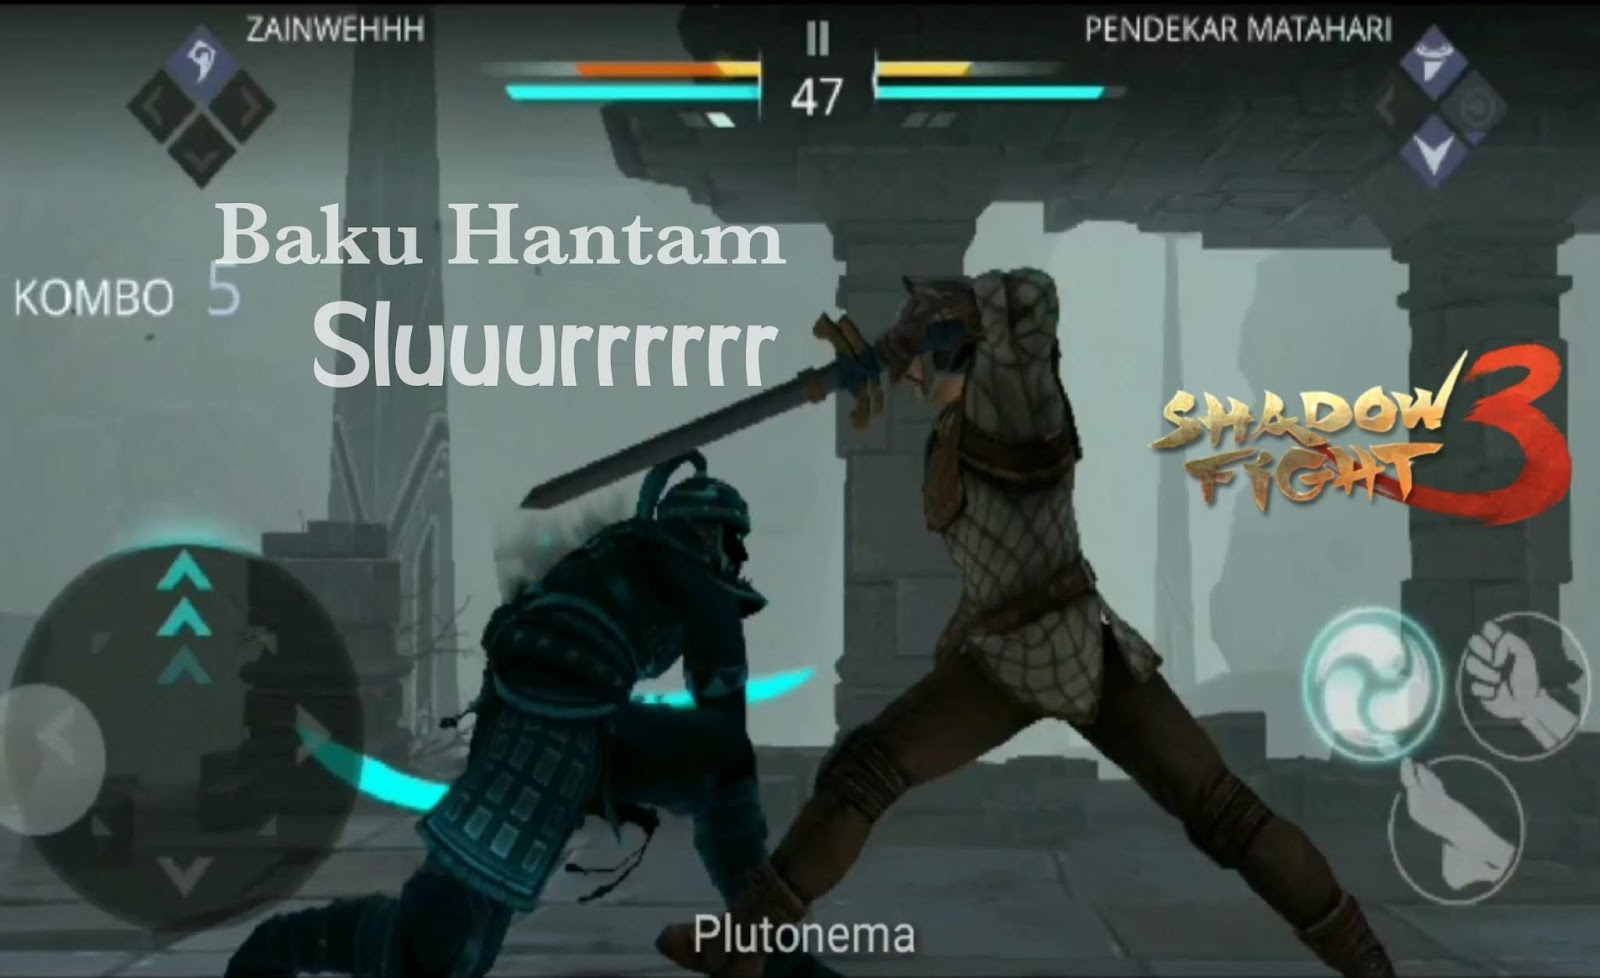 android, game, game fighting, ios, rpg game, shadow fight 3 review,